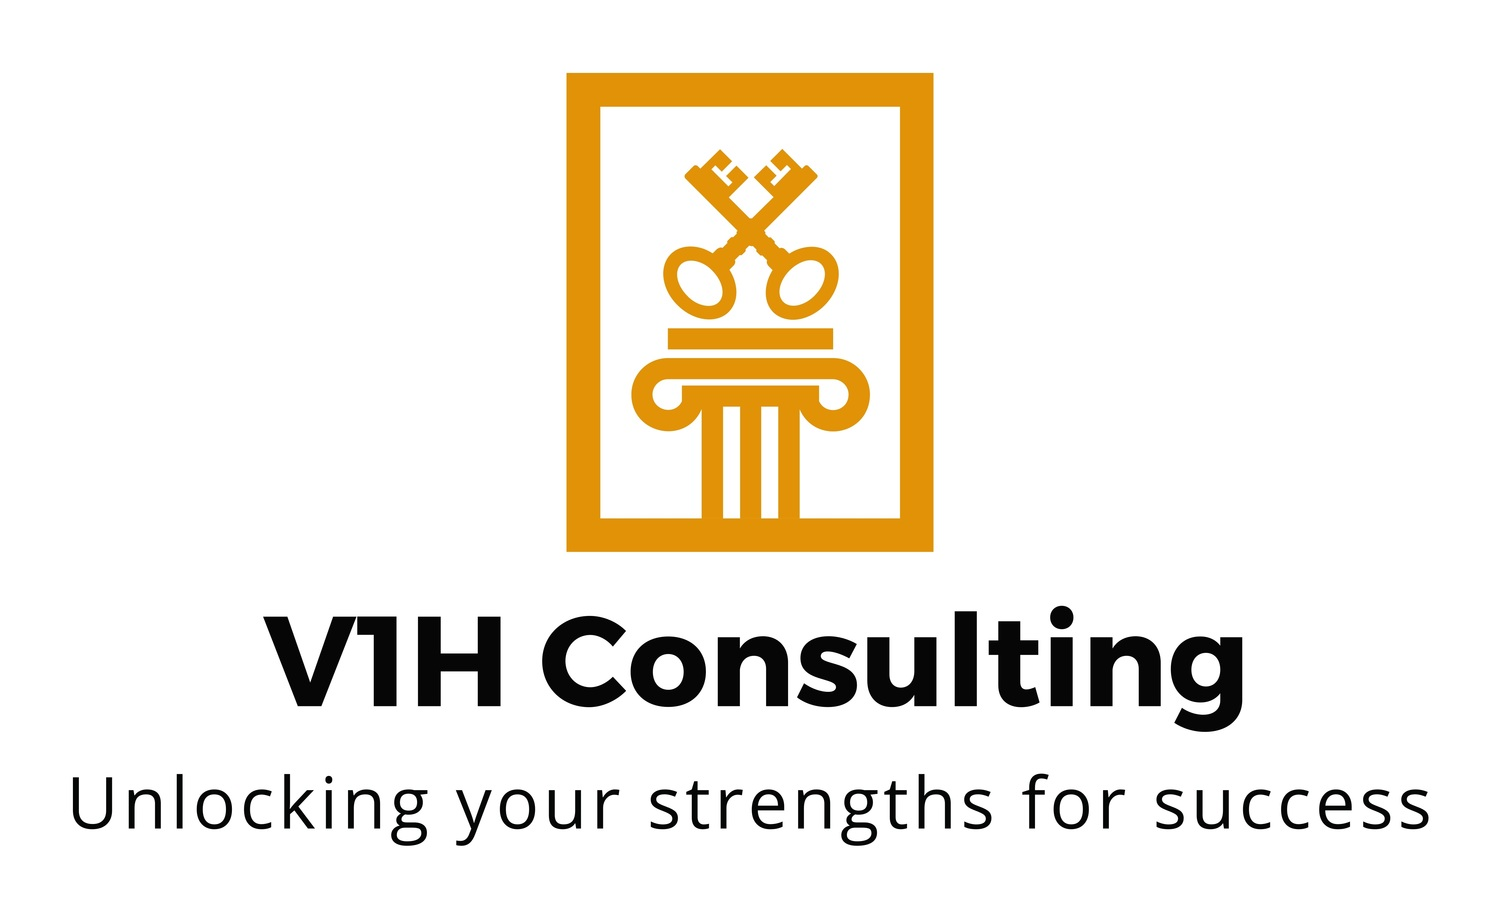 V1H CONSULTING